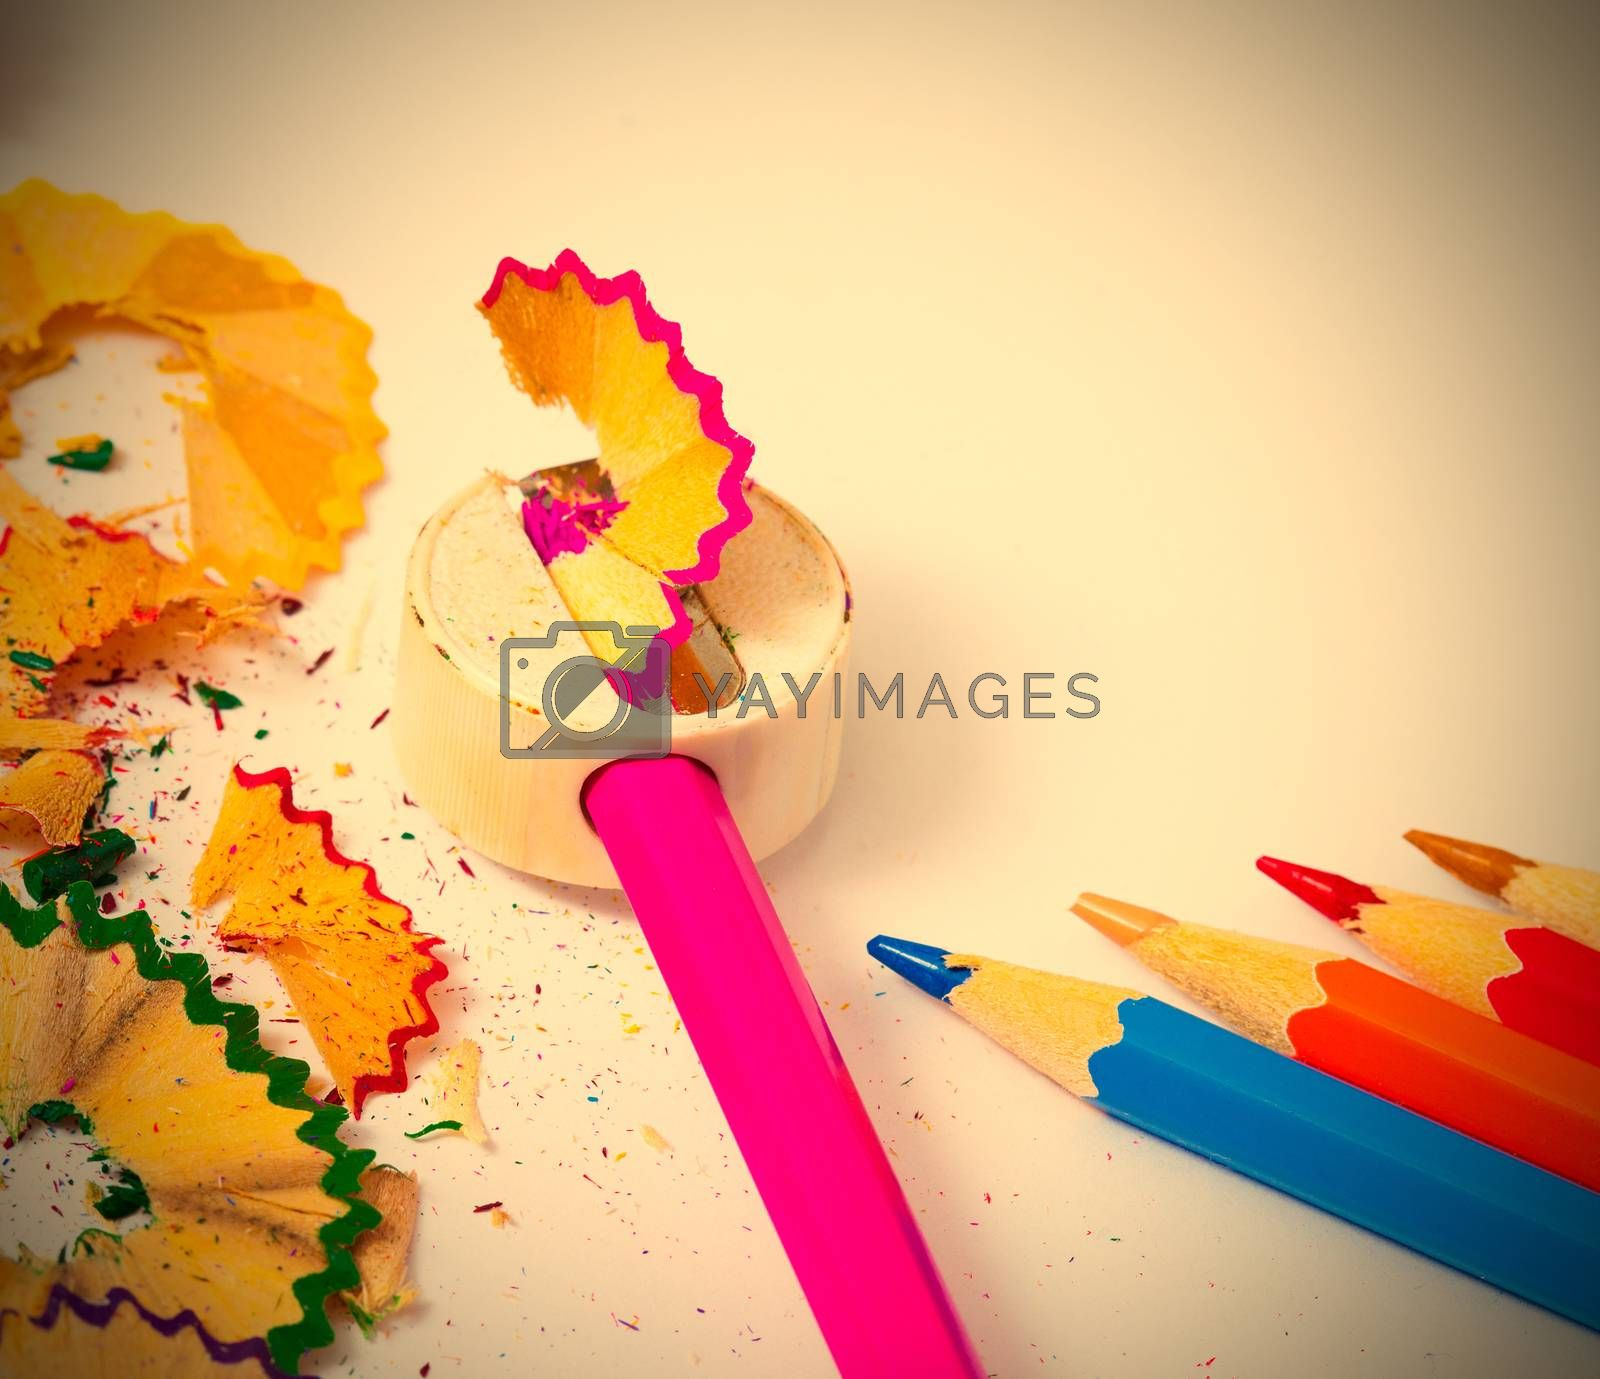 colored pencils, sharpener and shavings on white background with copy space. instagram image retro style